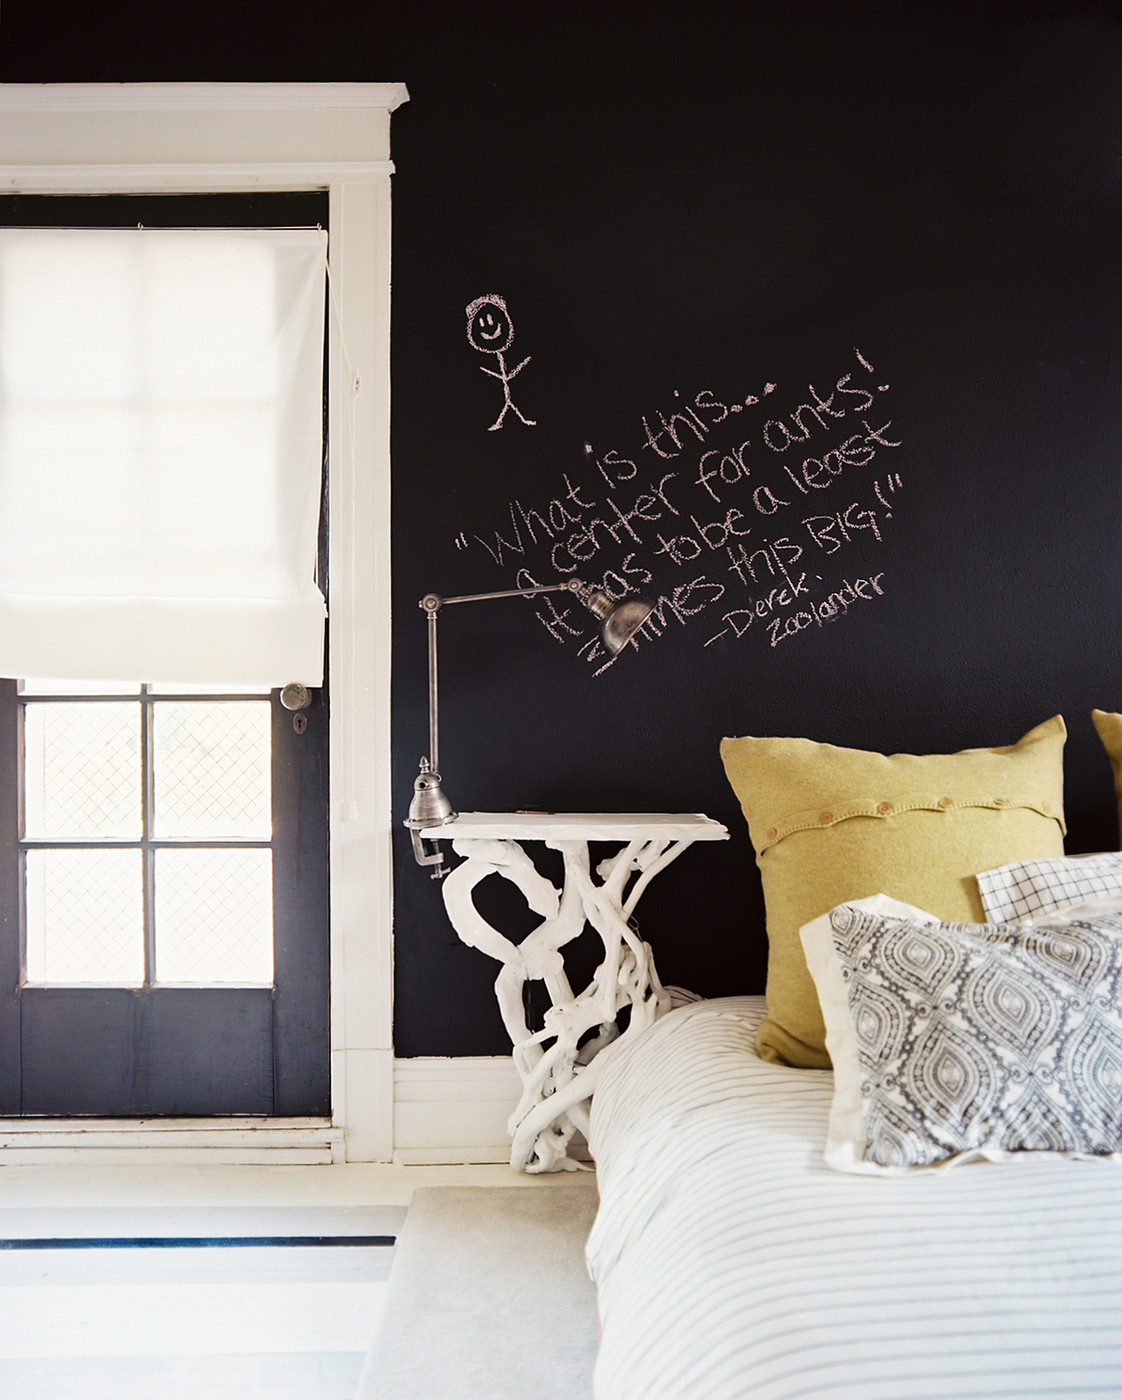 Home Design Ideas 3d: Drawing On The Walls